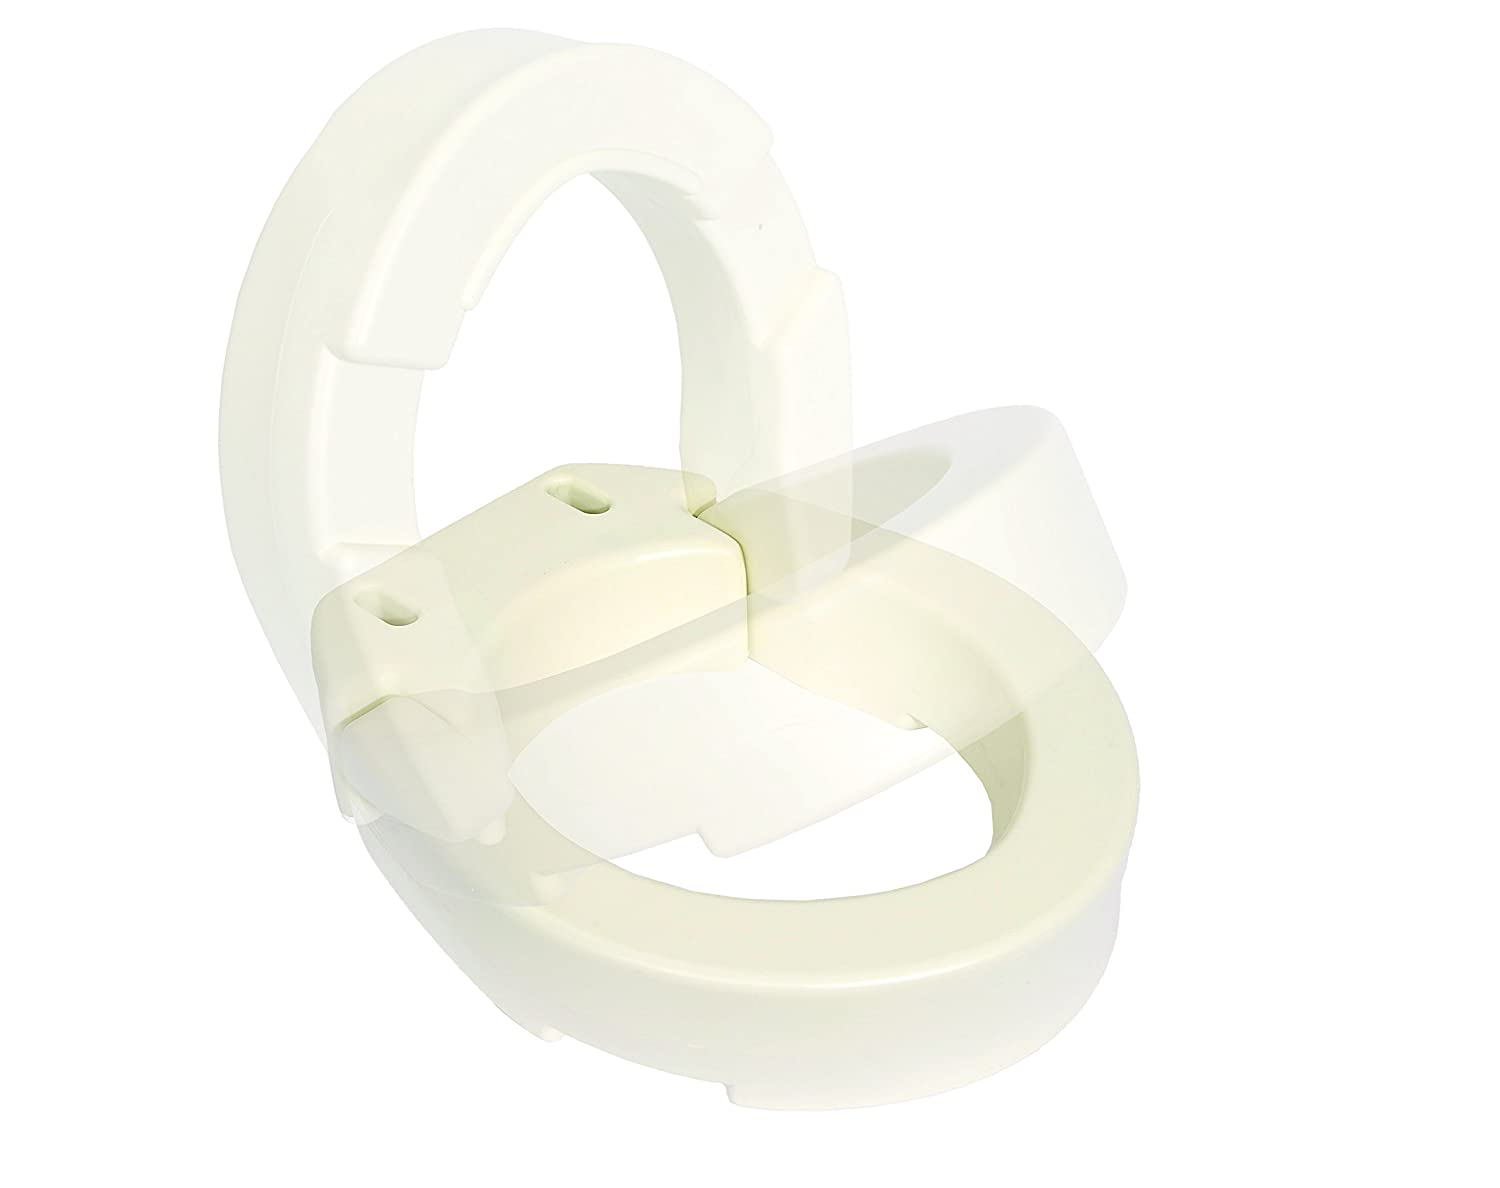 Astonishing Essential Medical Supply Hinged Toilet Seat Riser For Standard Toilets Pdpeps Interior Chair Design Pdpepsorg